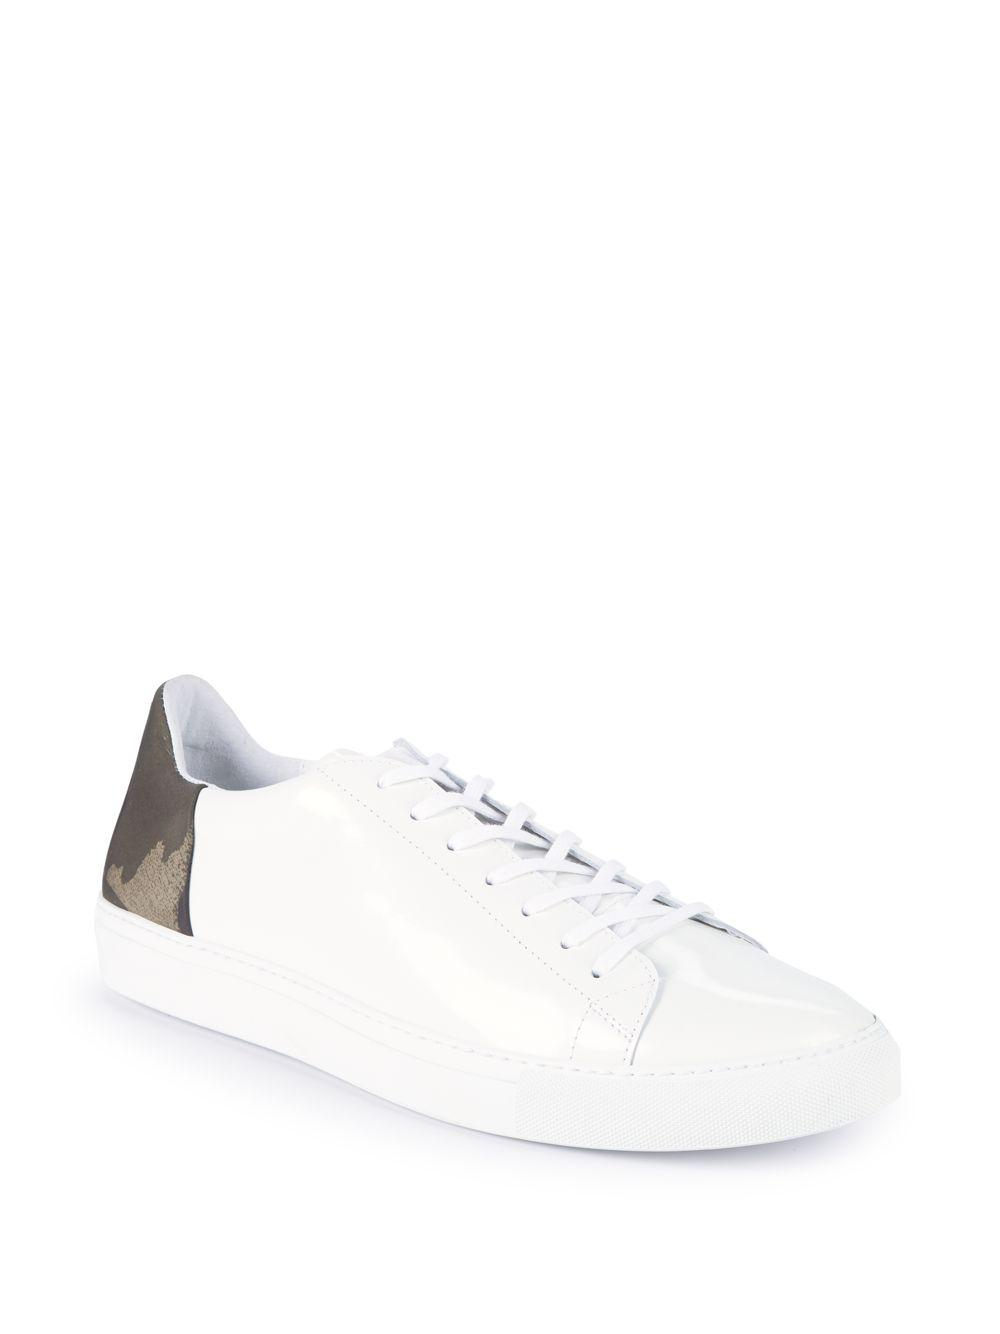 e4ed0432c7e91 Belstaff - White Camouflage Low-top Leather Sneakers for Men - Lyst. View  fullscreen